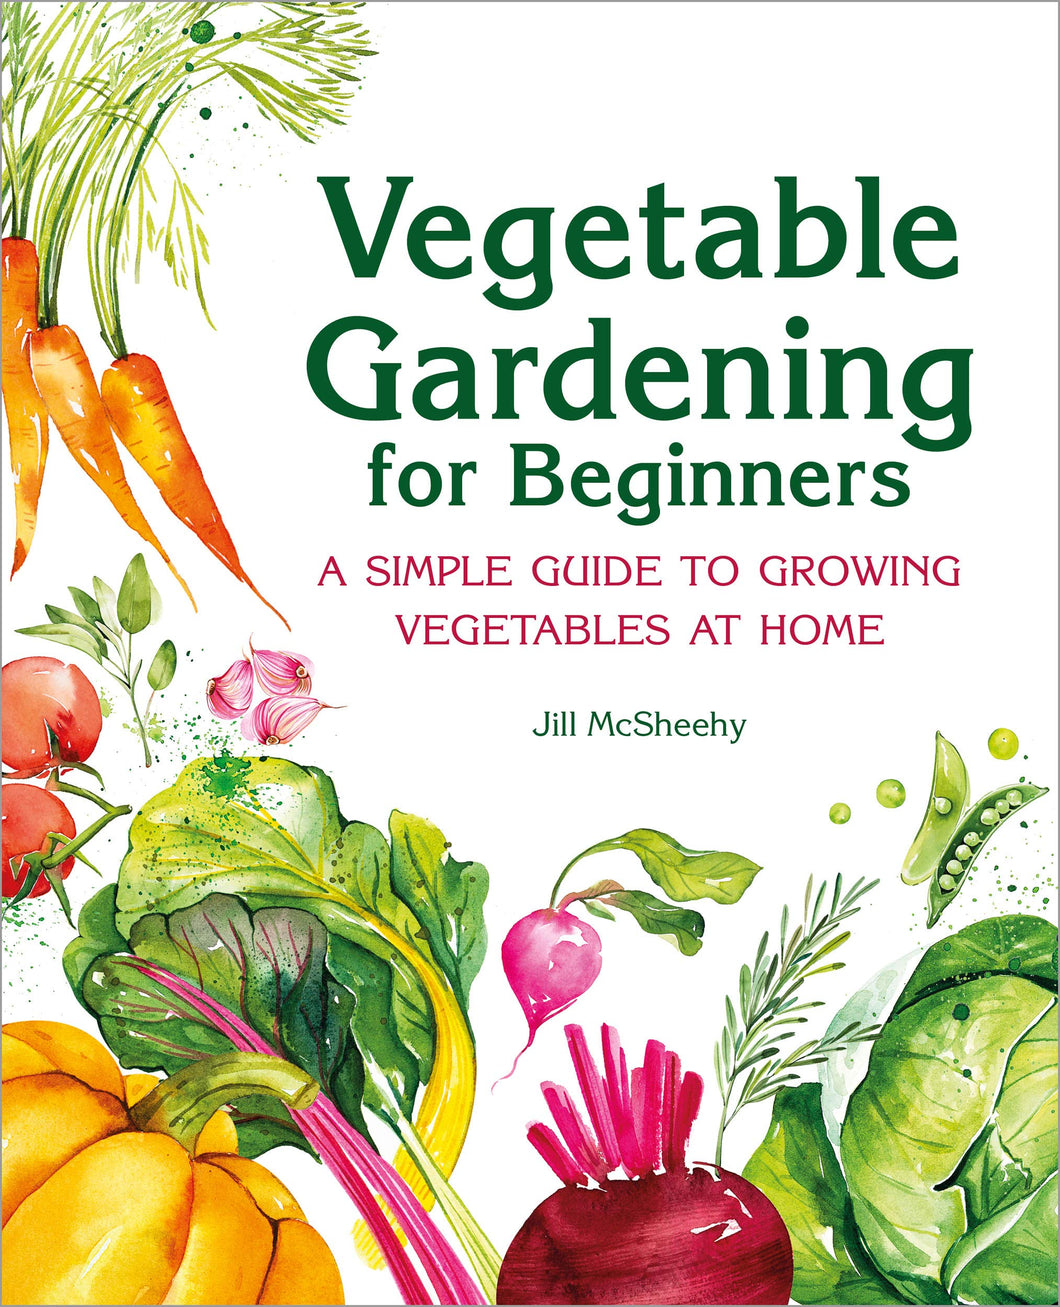 Vegetable Gardening for Beginners: A Simple Guide to Growing Vegetables at Home - Tolerant Planet